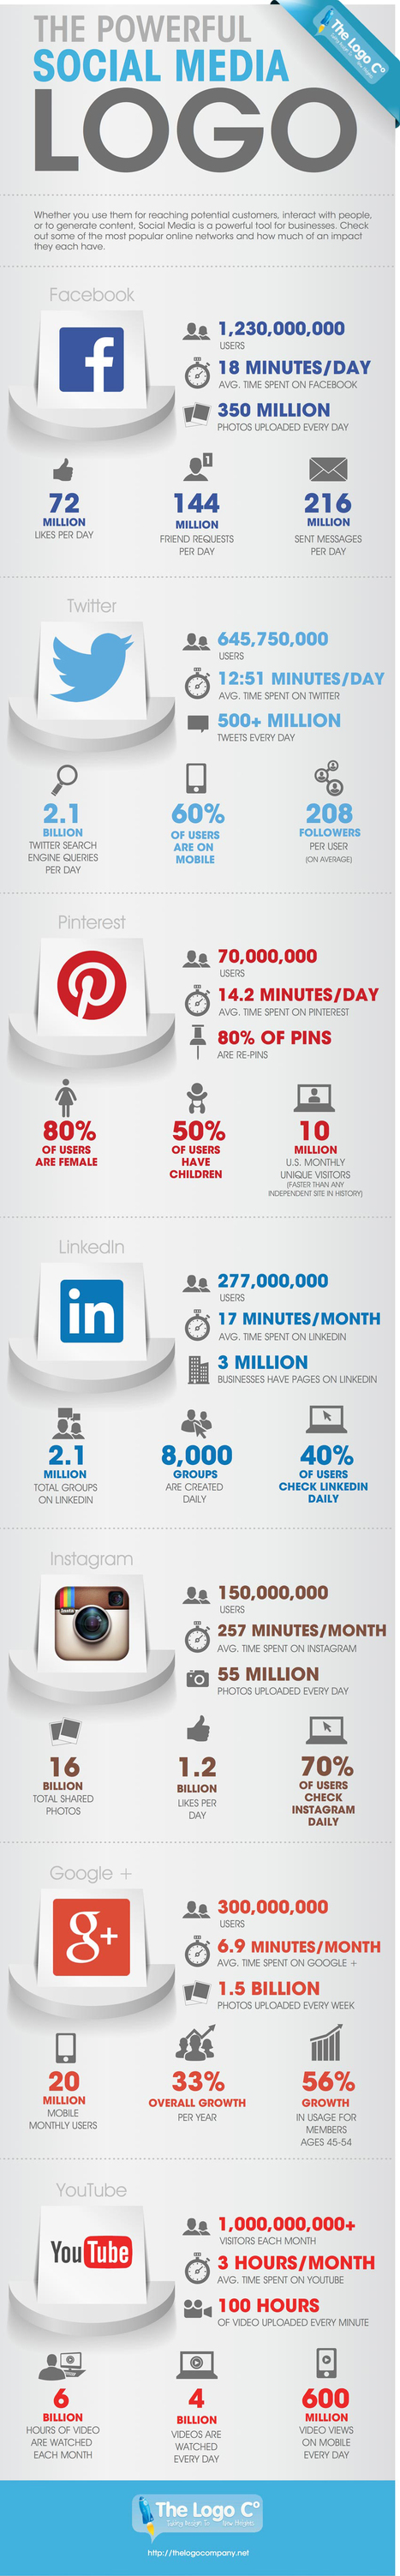 2014: The Numbers Behind Social Media [infographic] | Understanding Social Media | Scoop.it